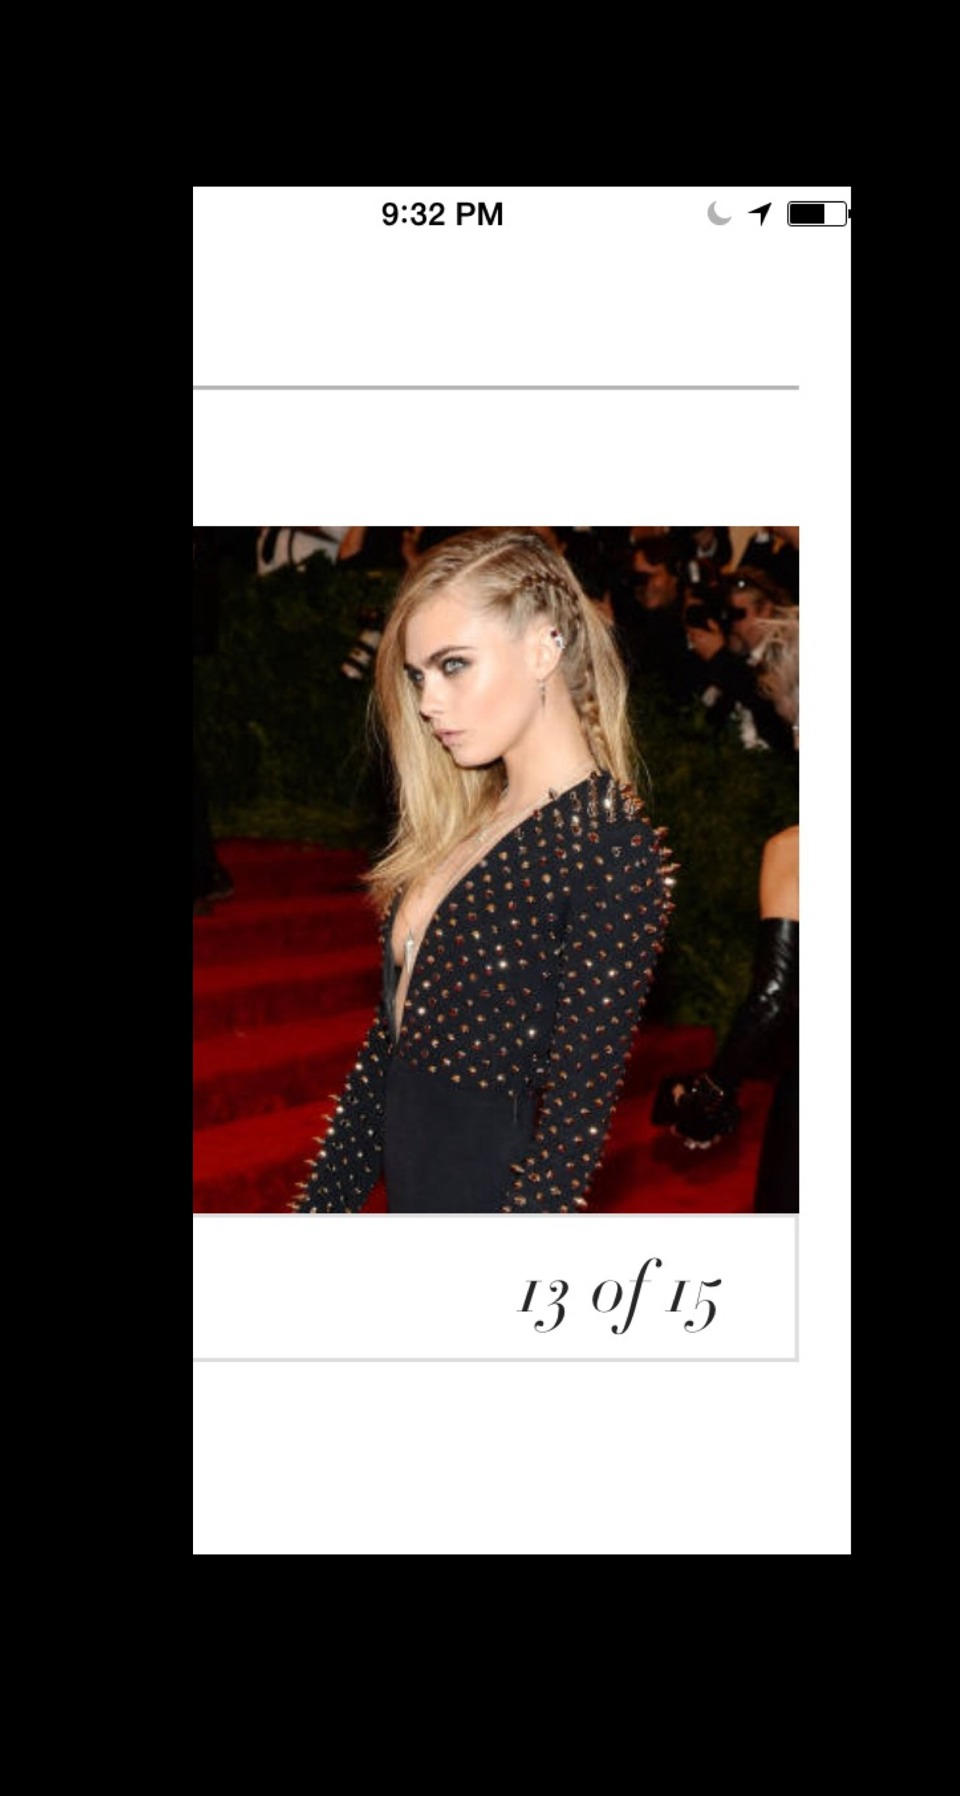 Peek-a-Boo A tiny braid close to the scalp adds a punky edge to Cara Delevingne's free-flowing styles.